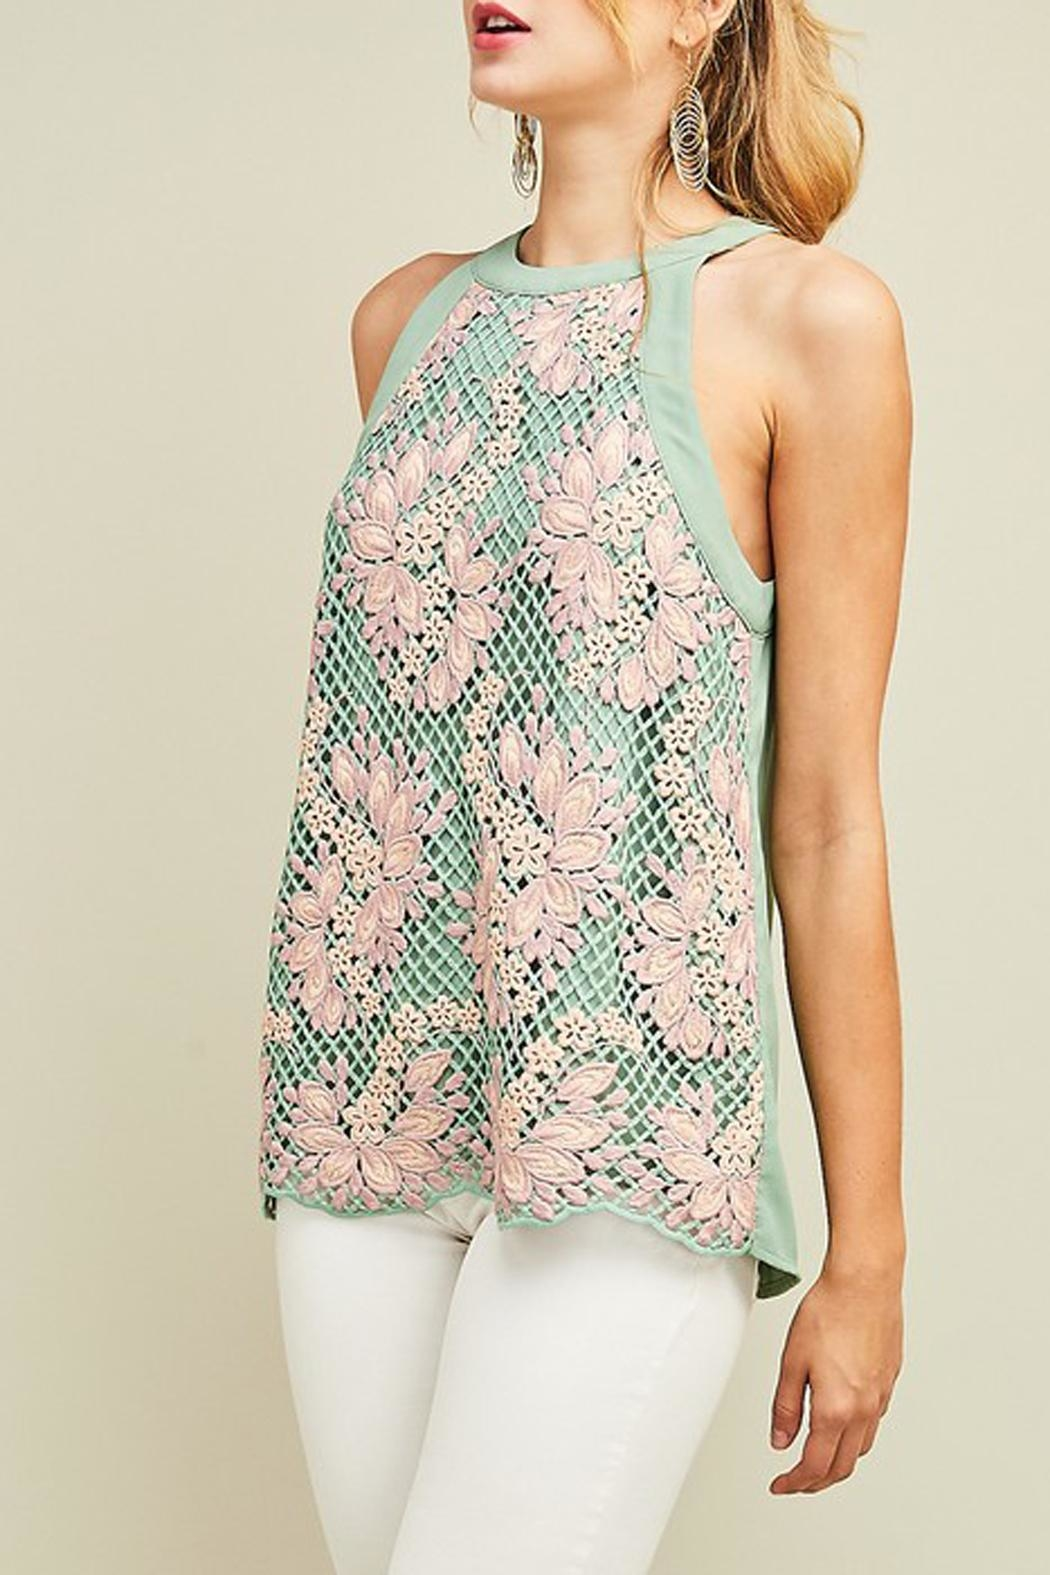 Entro Embroidered Mint Haltertop - Main Image